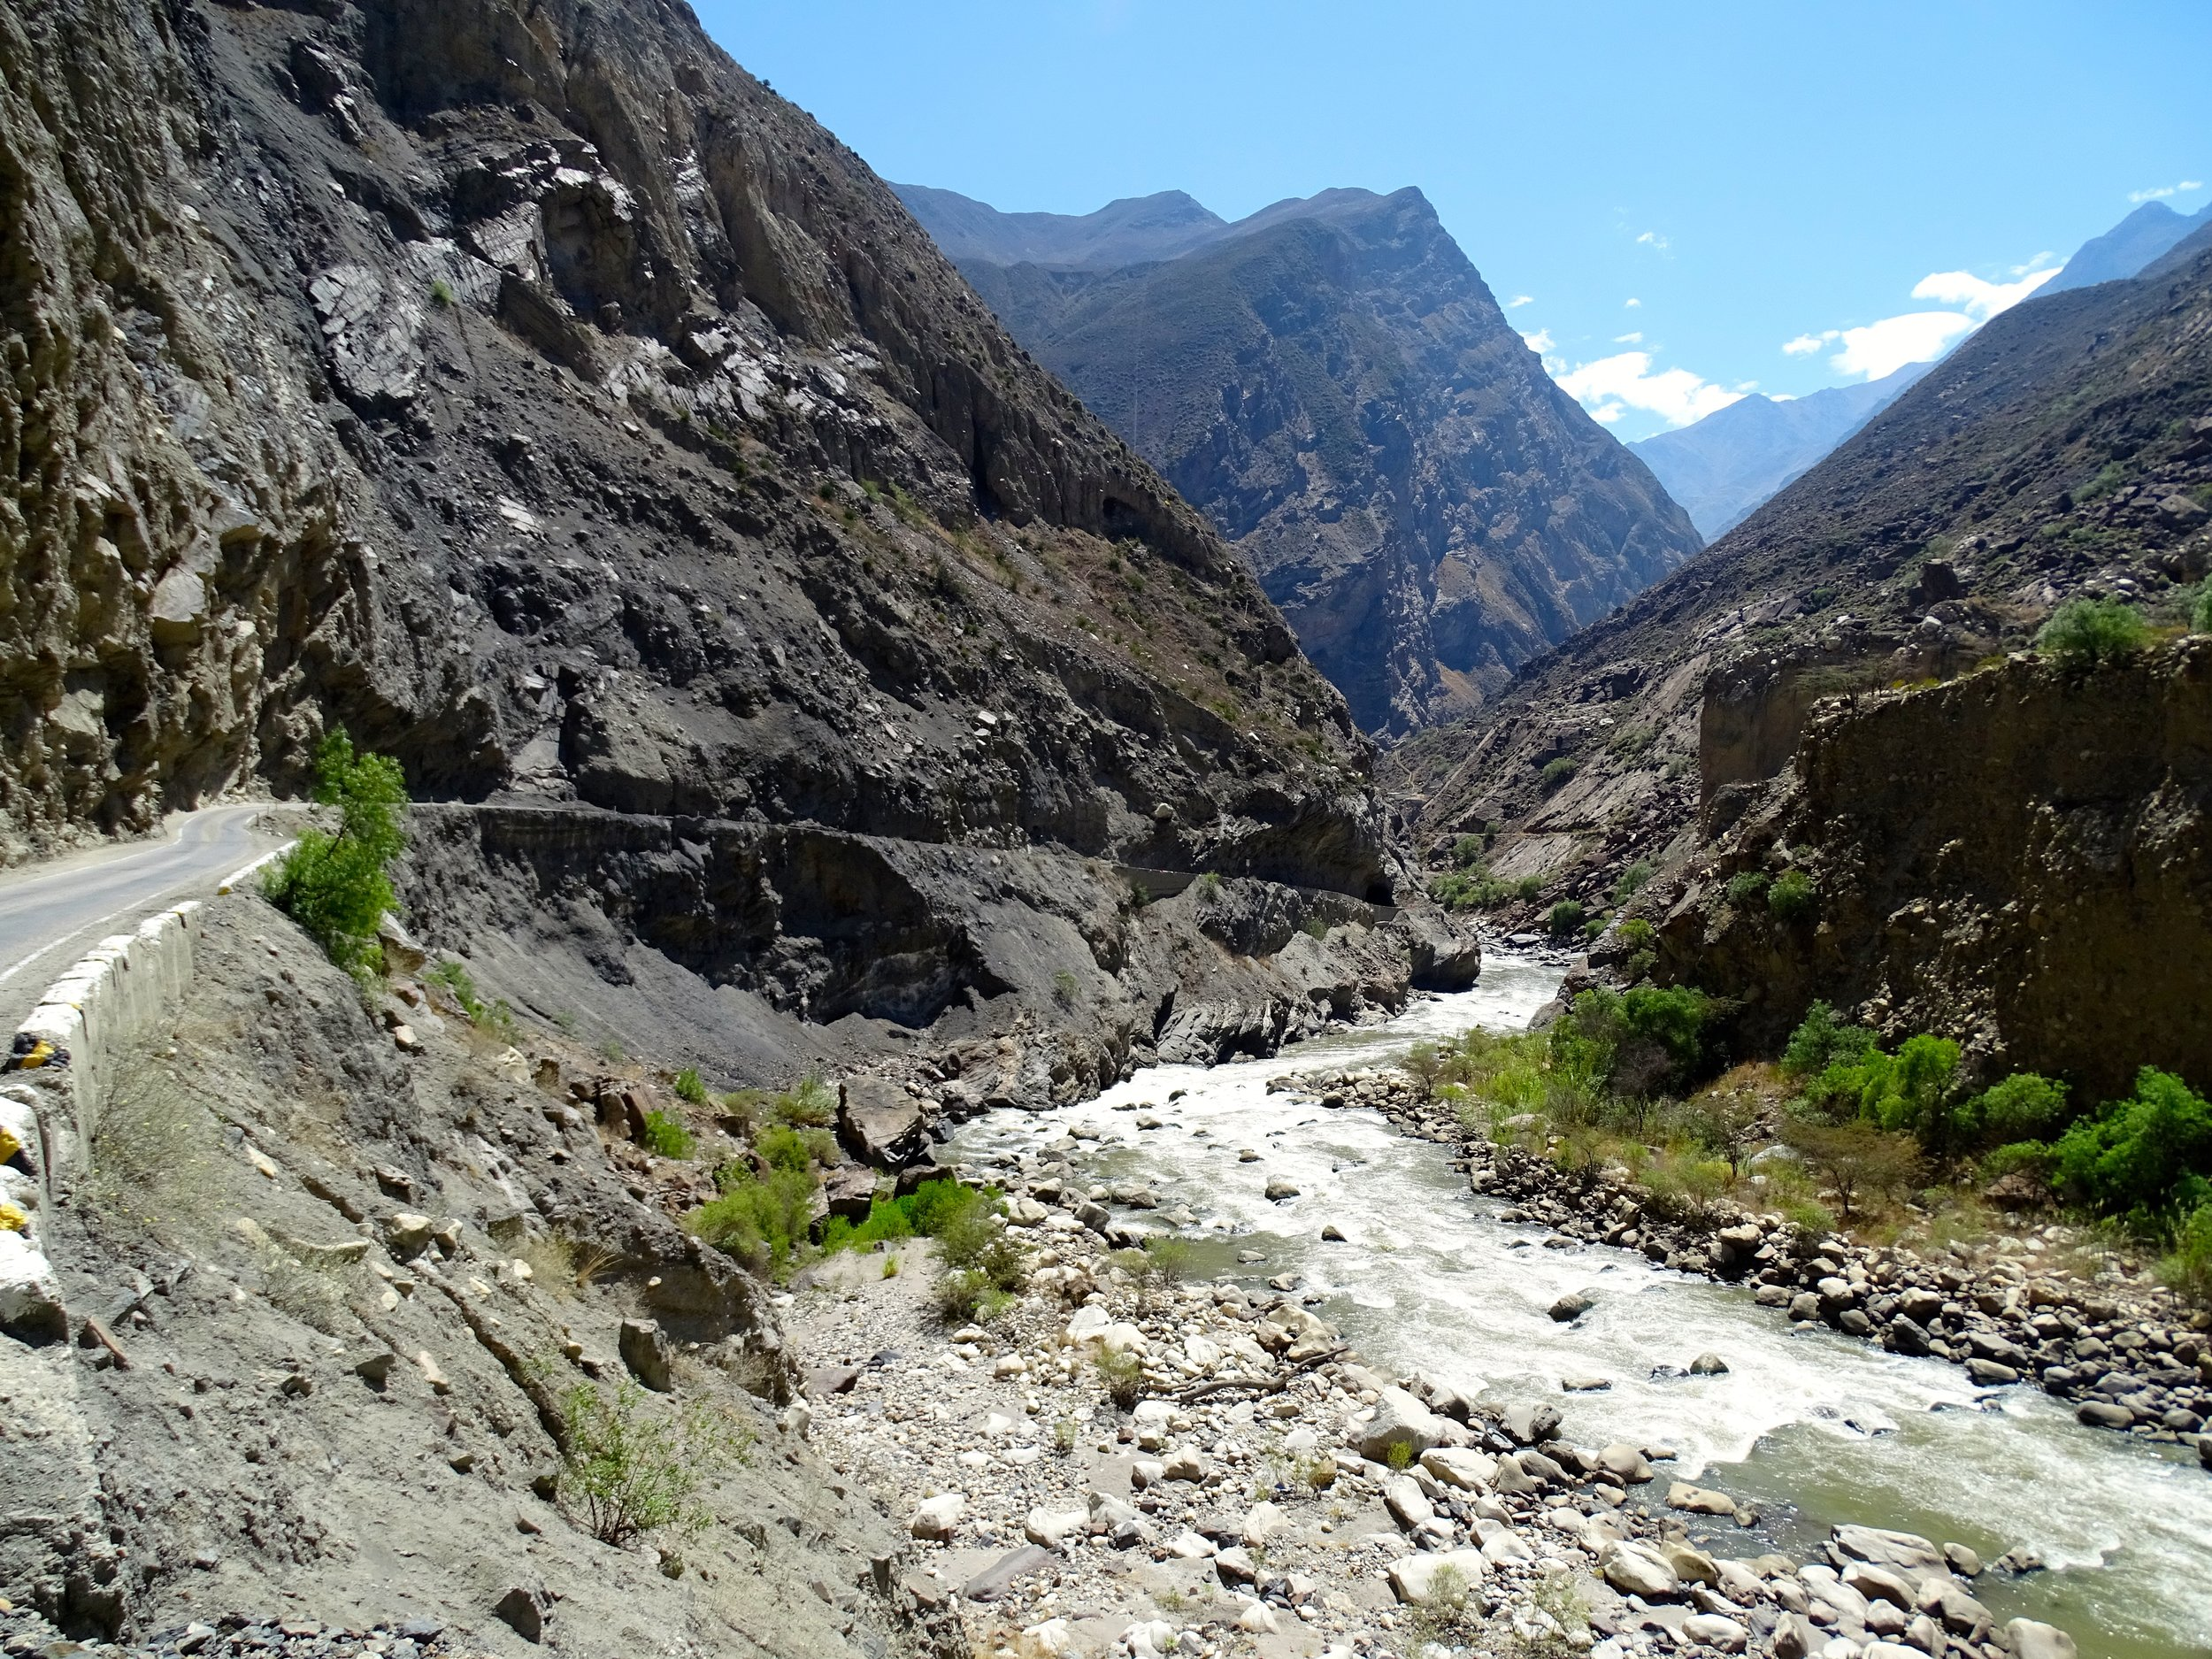 Before too long, the valley closes in and narrows, and the road drops into Cañon del Pato.